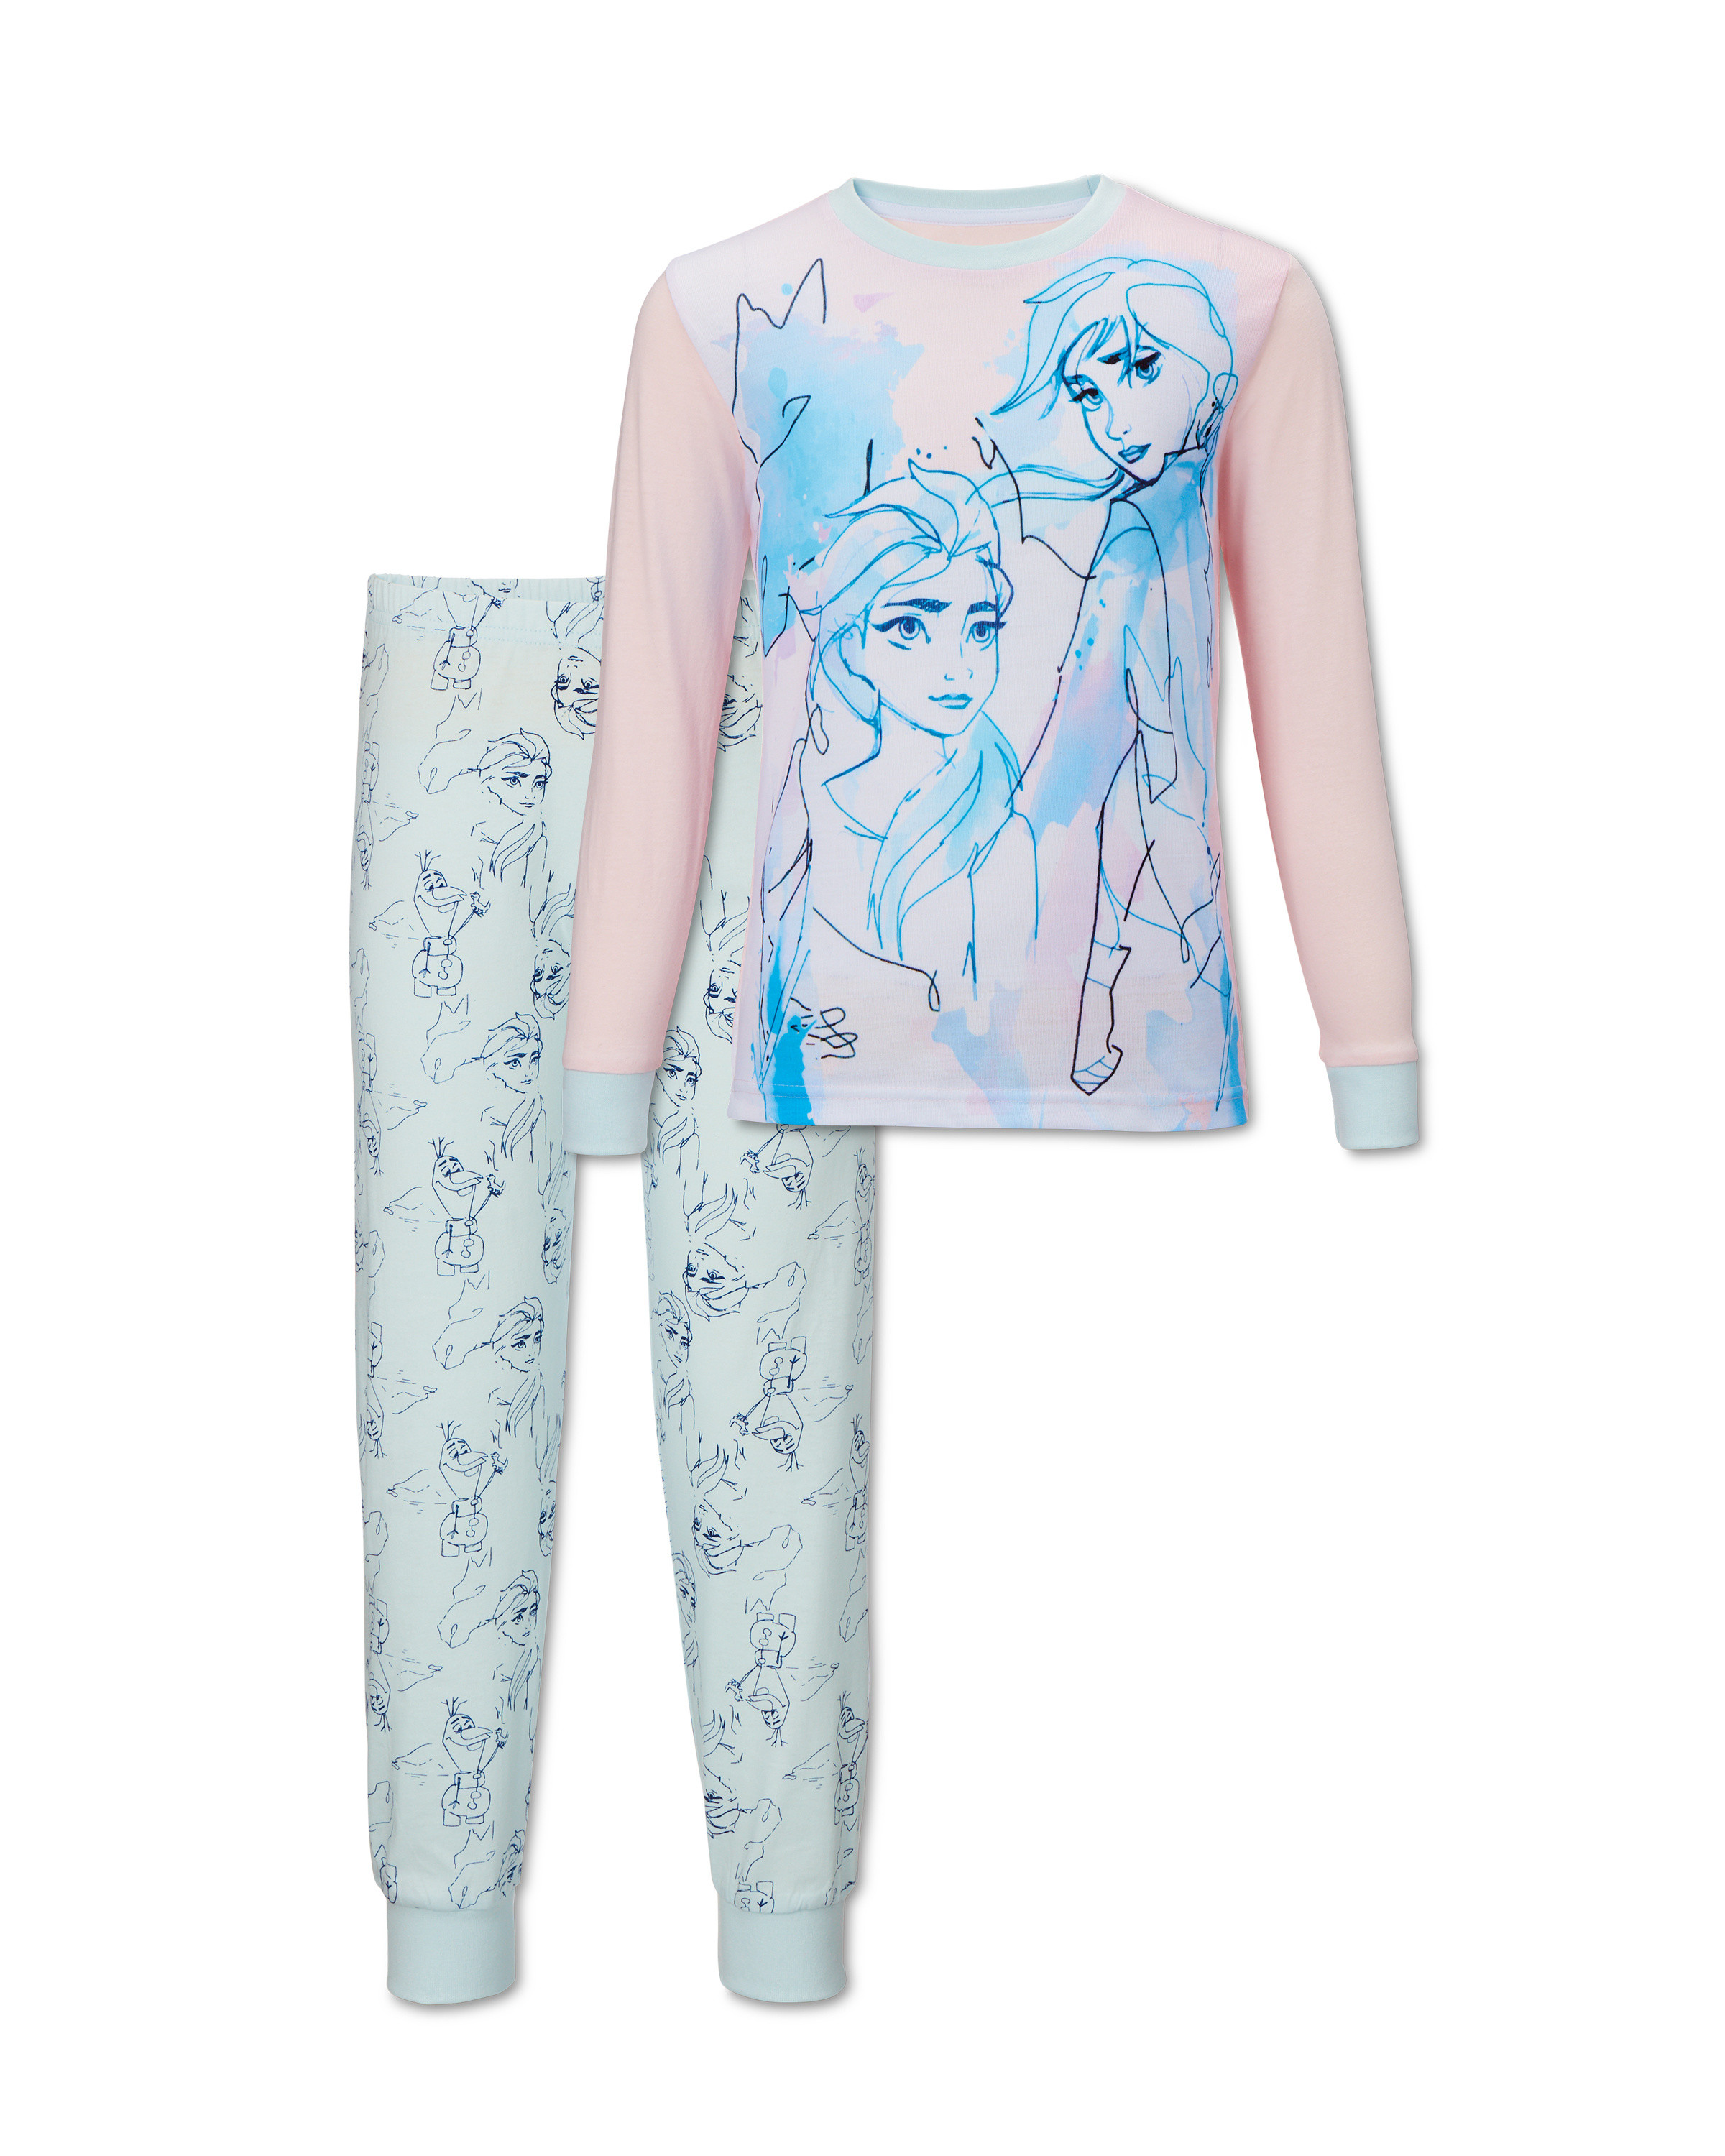 Disney Frozen Children's Pyjamas